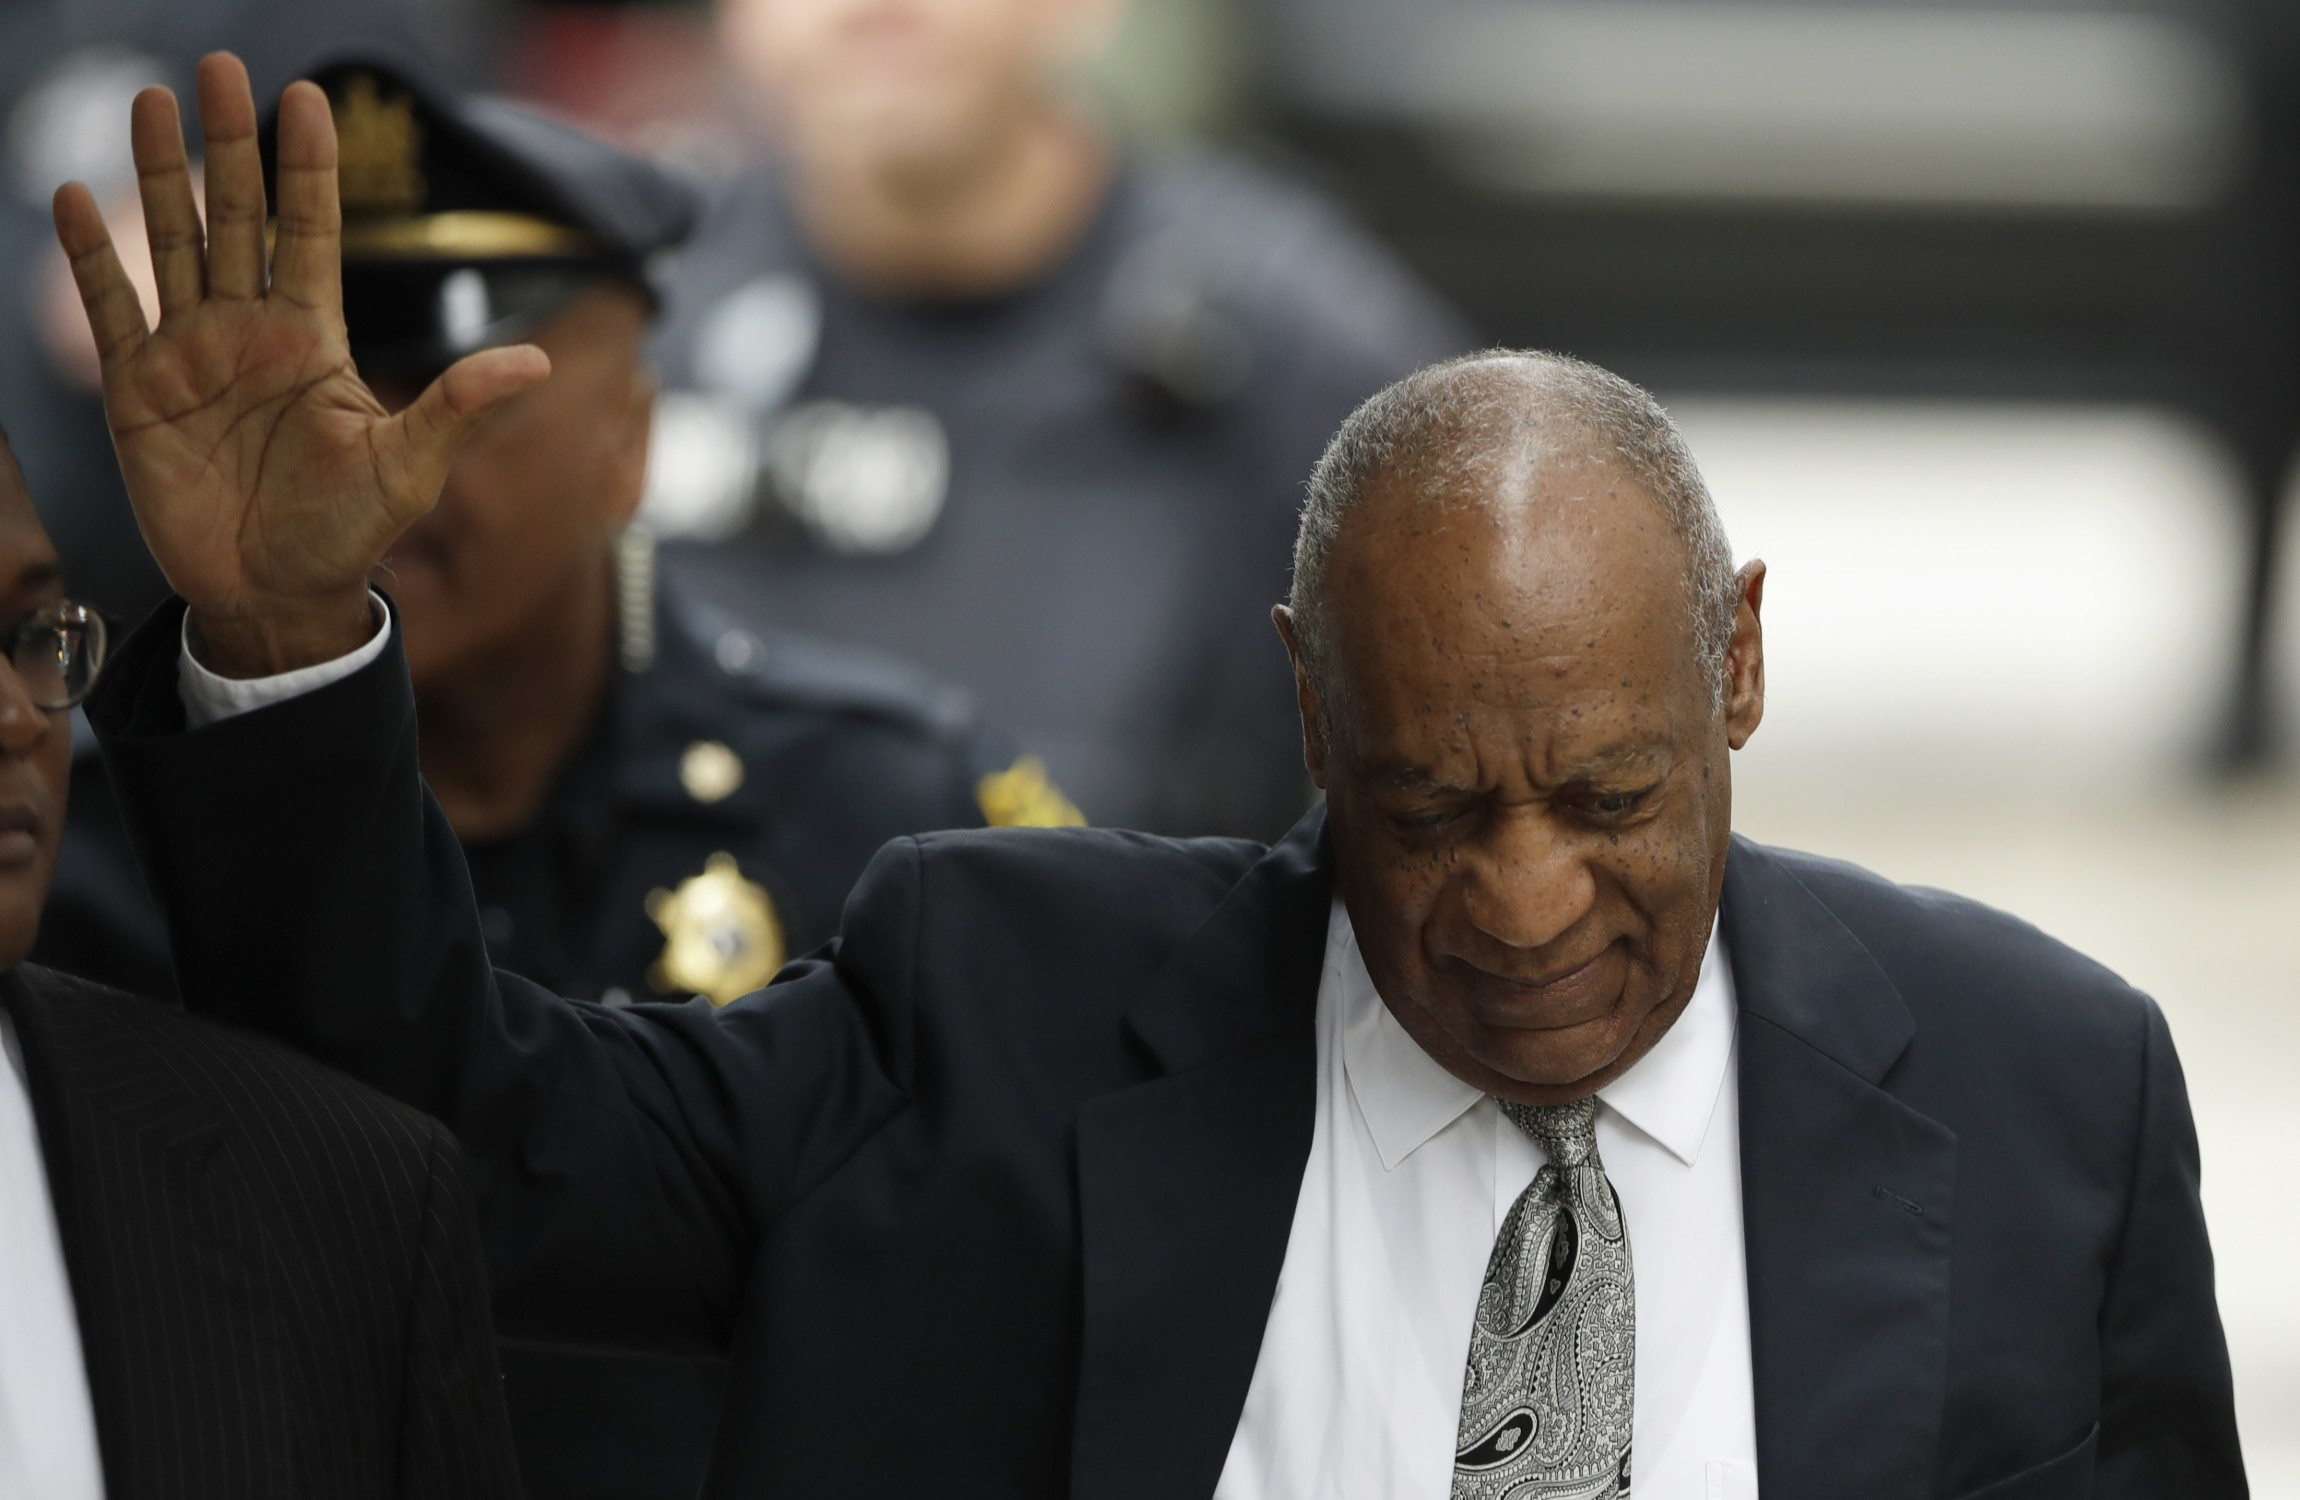 Statement from Cosby's wife assailing judge, prosecutors